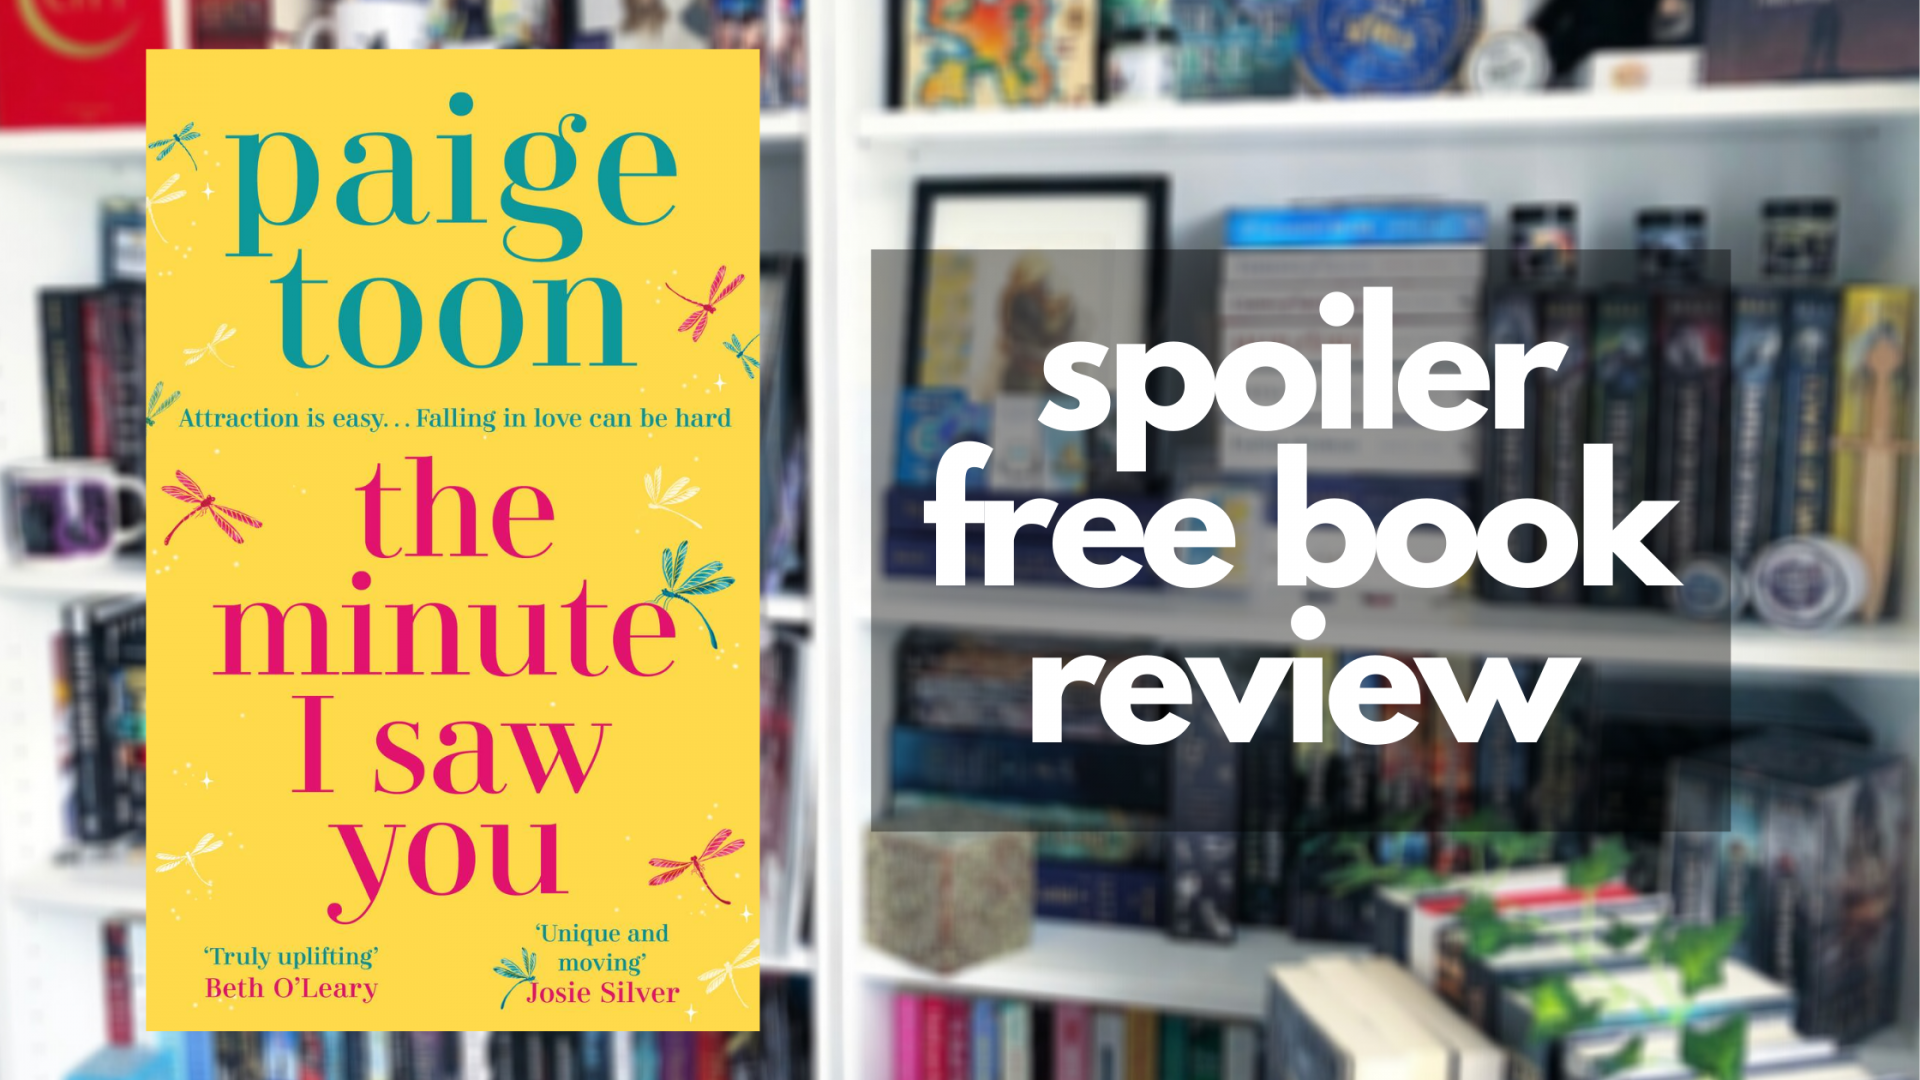 Review of The Minute I Saw You by Paige Toon